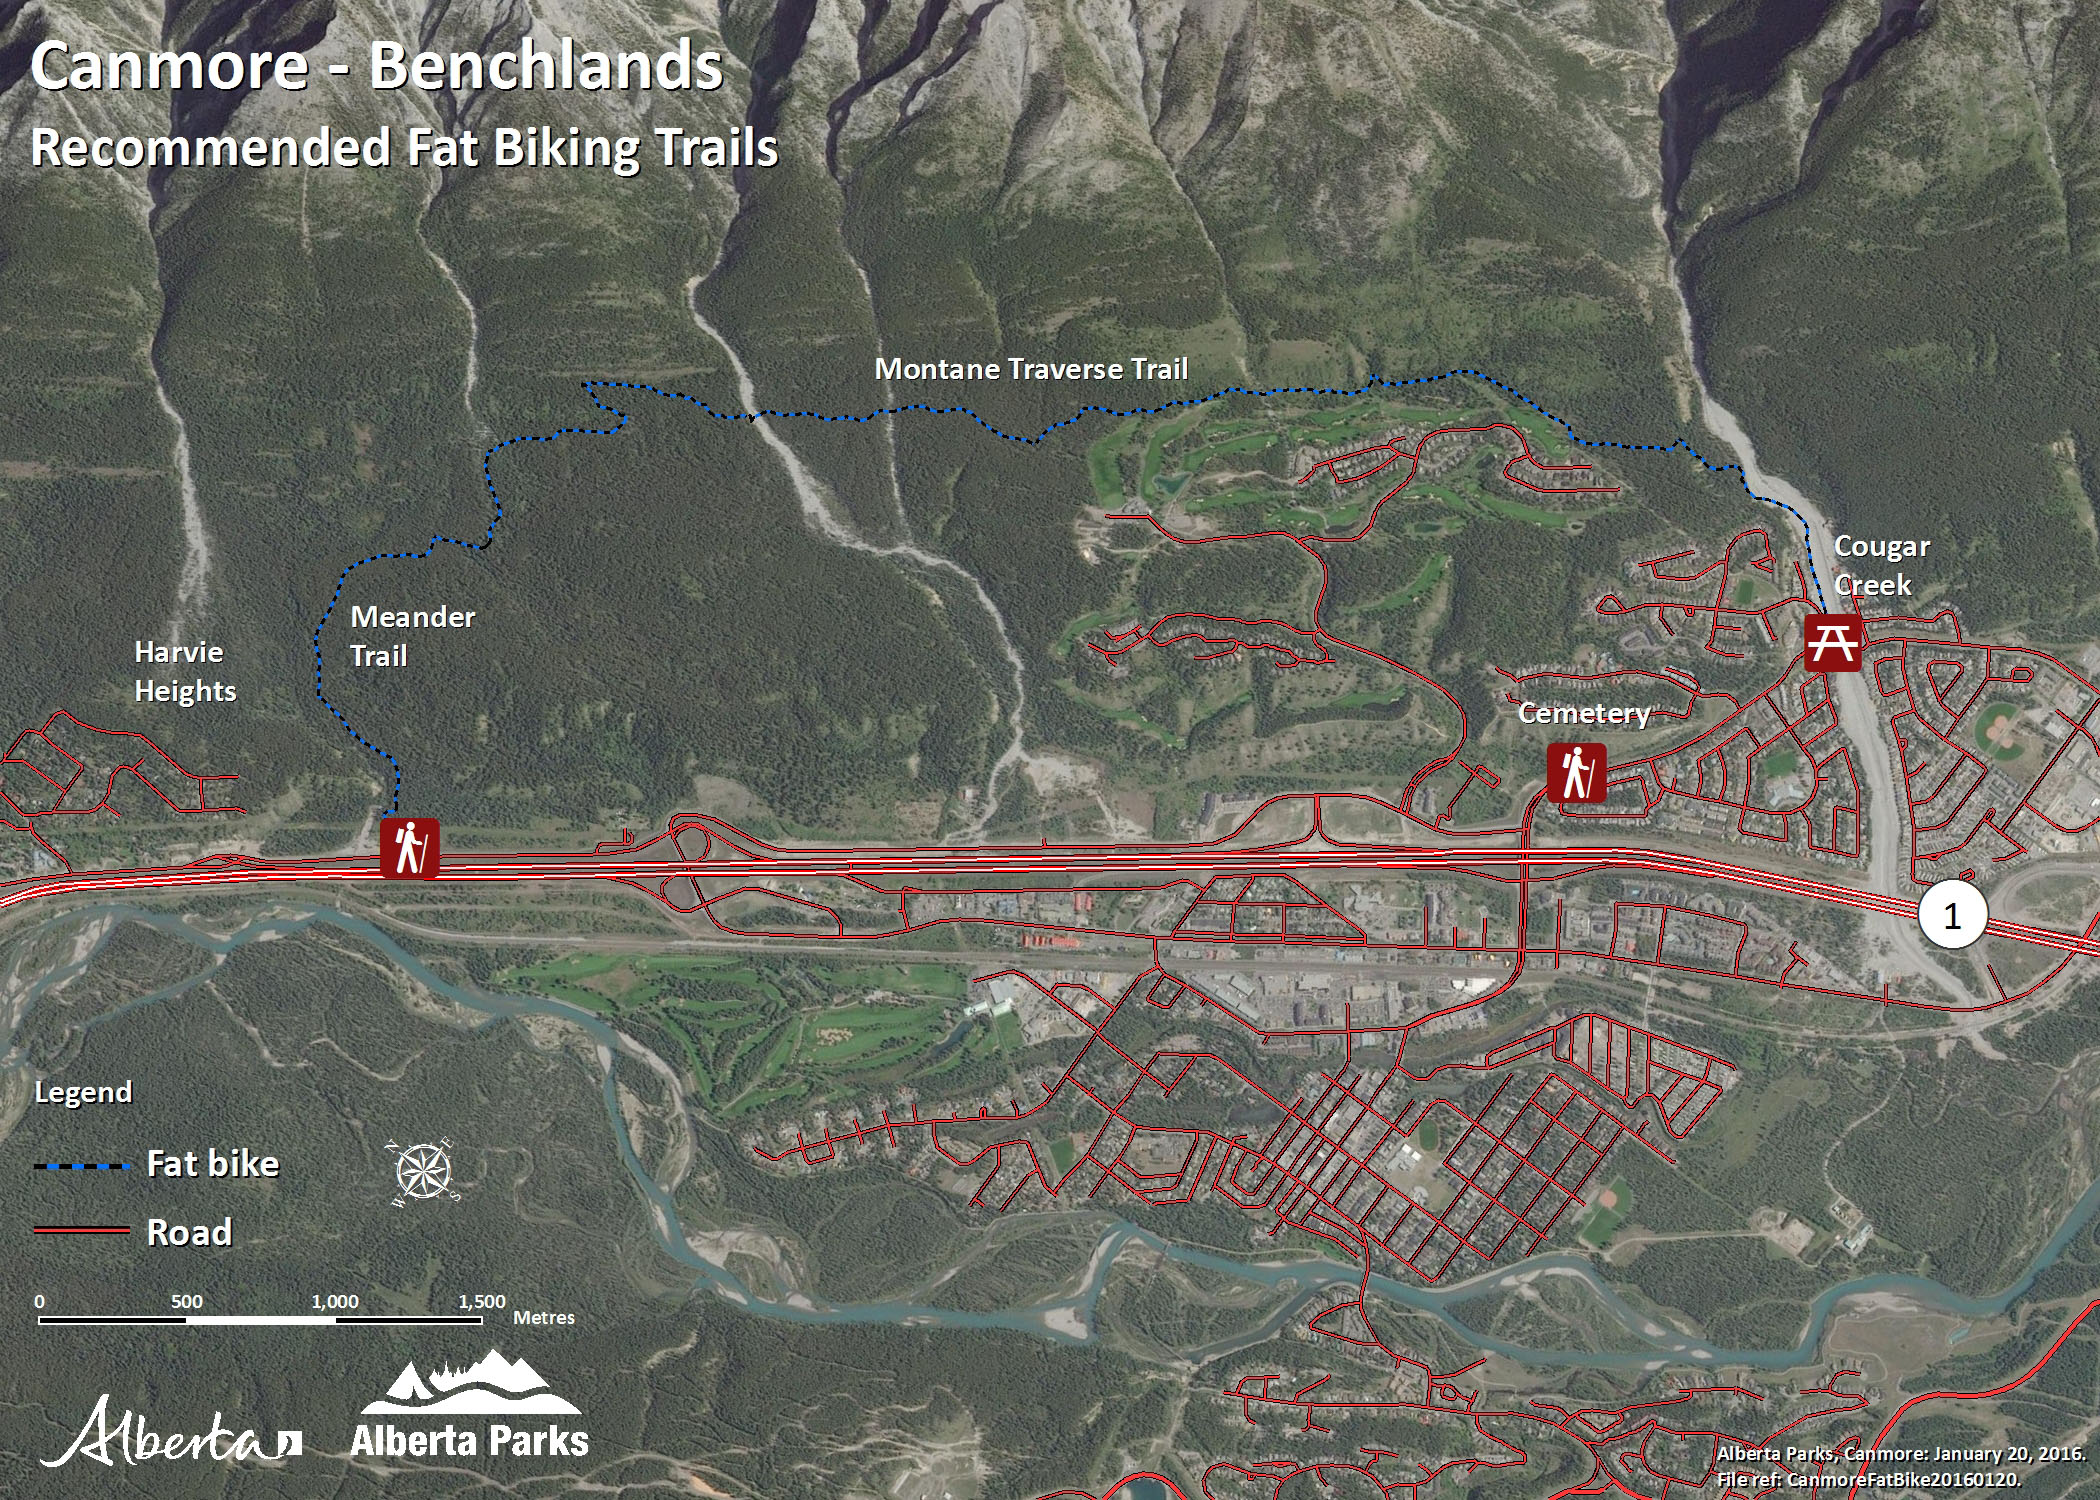 Kananaskis Canmore Area - Benchlands Fat Biking Trail Map